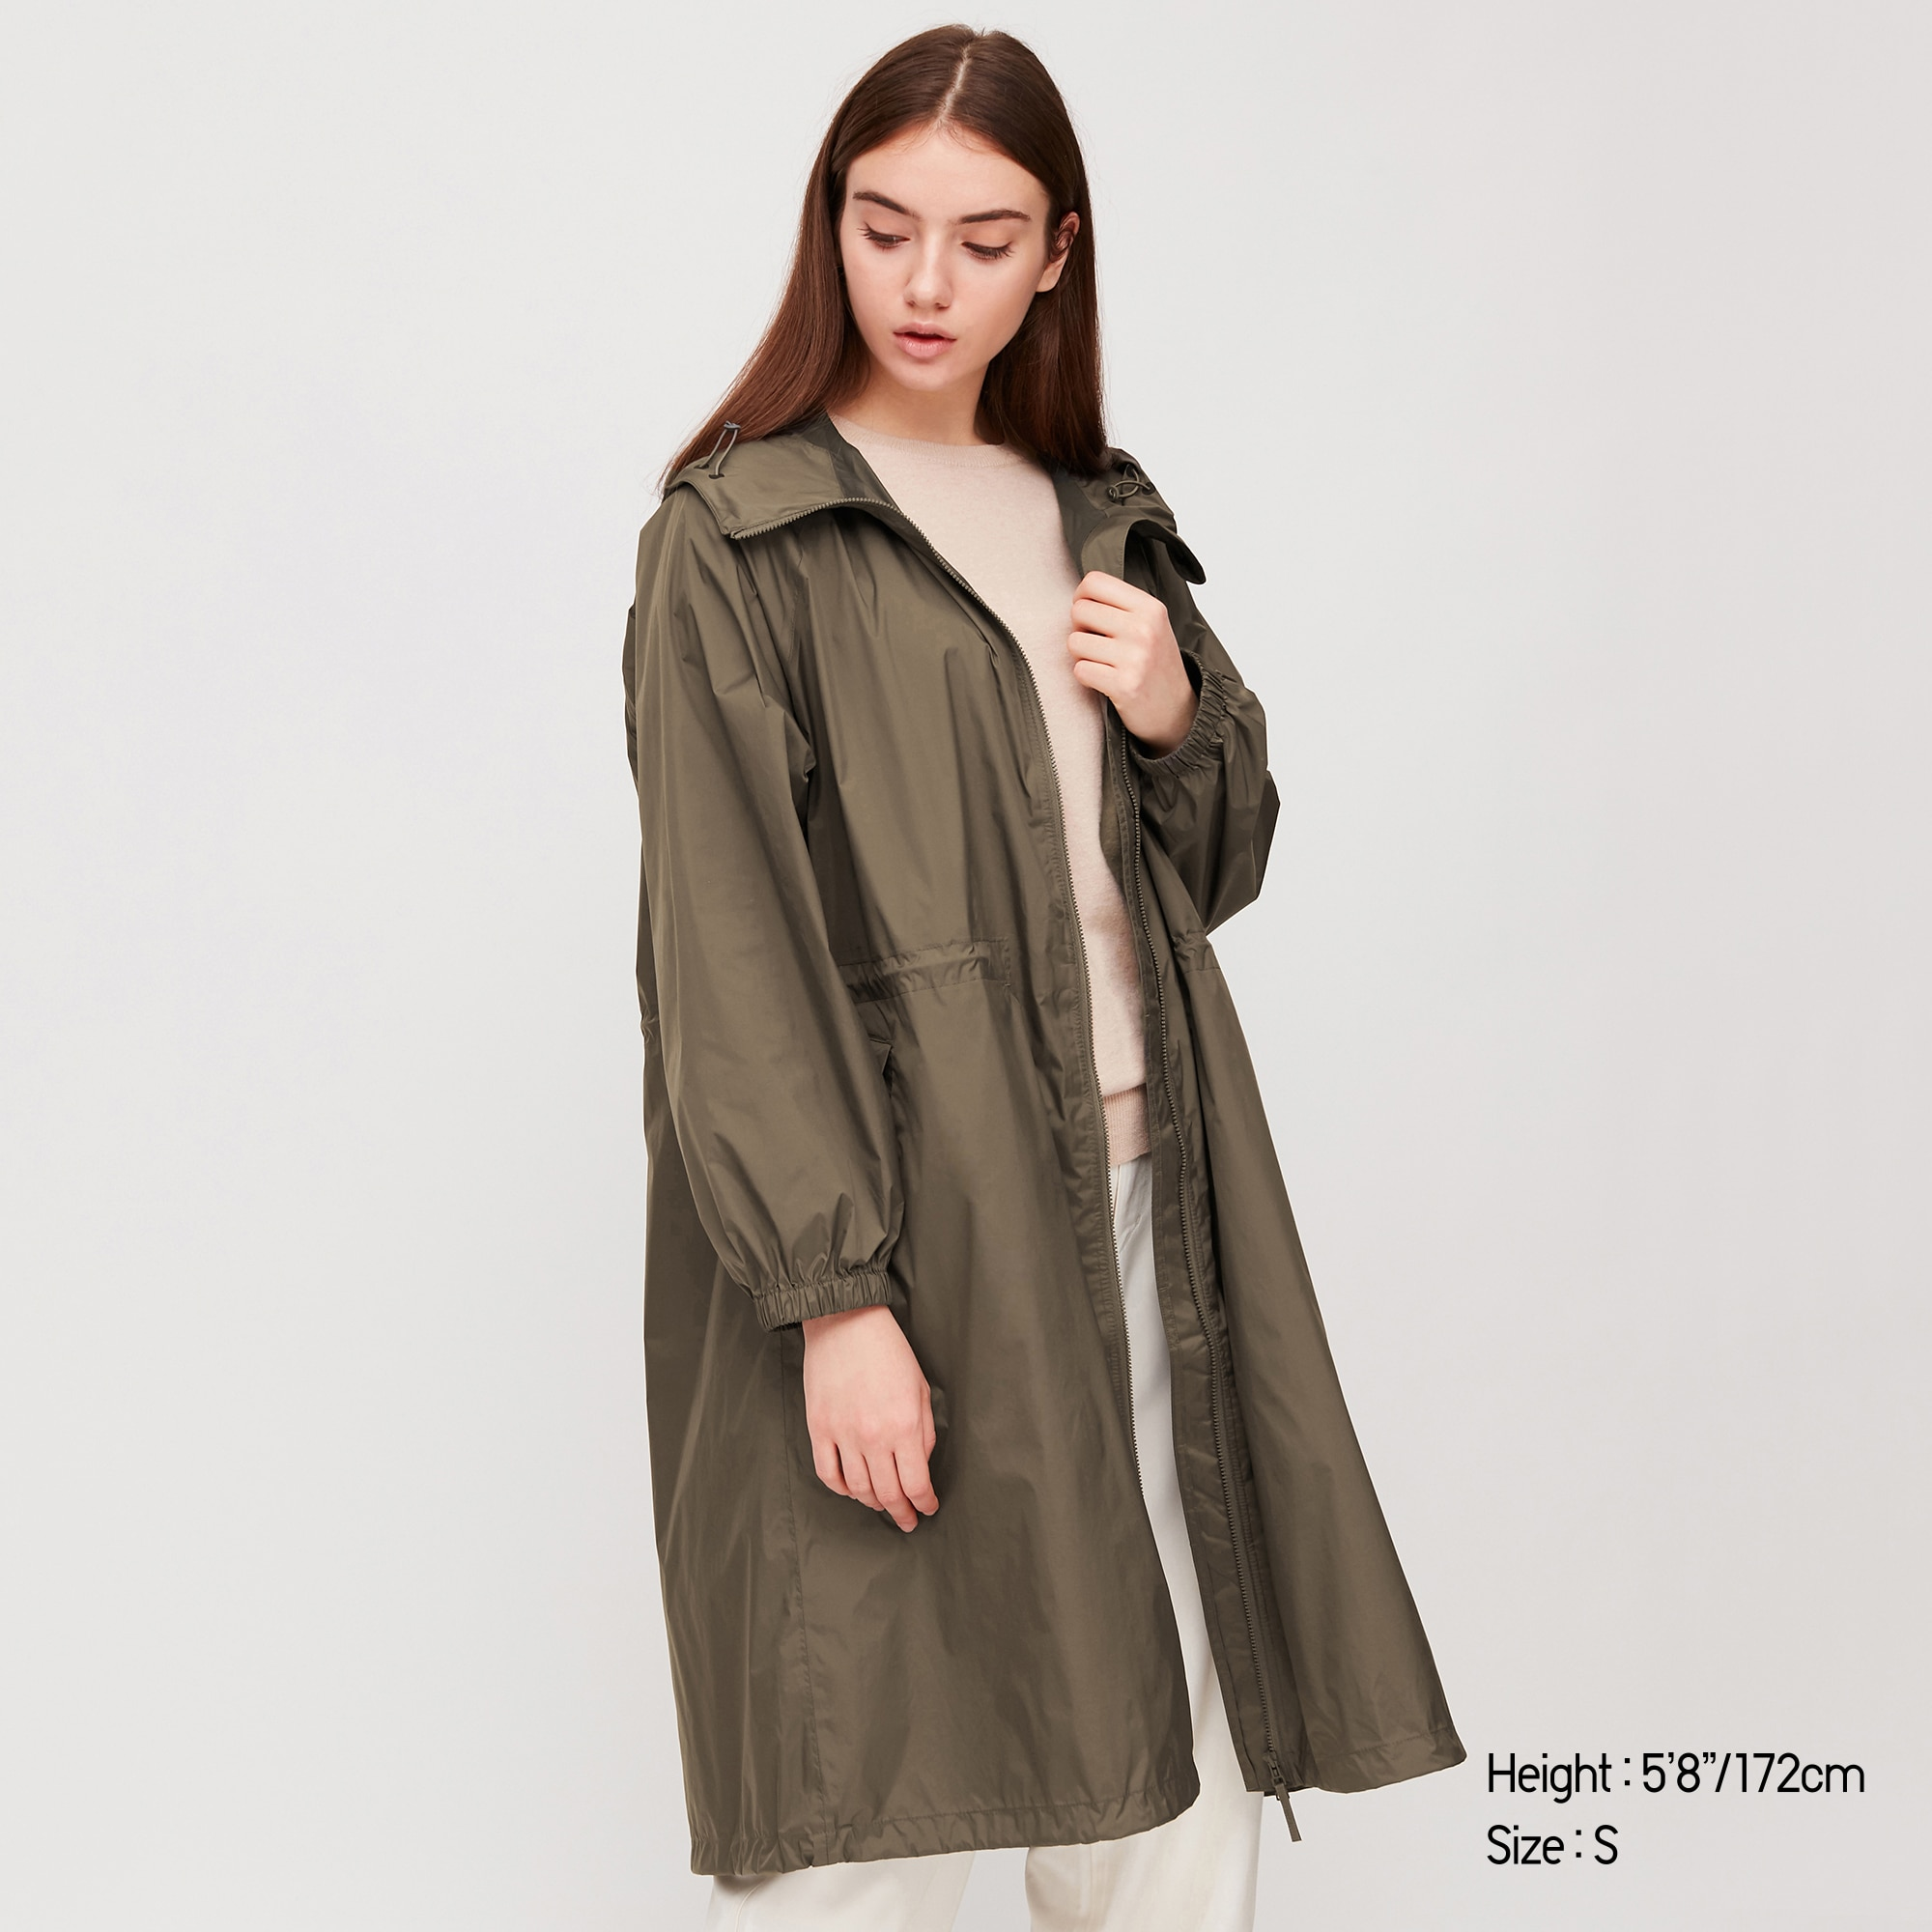 A thigh-length rainjacket from Uniqlo